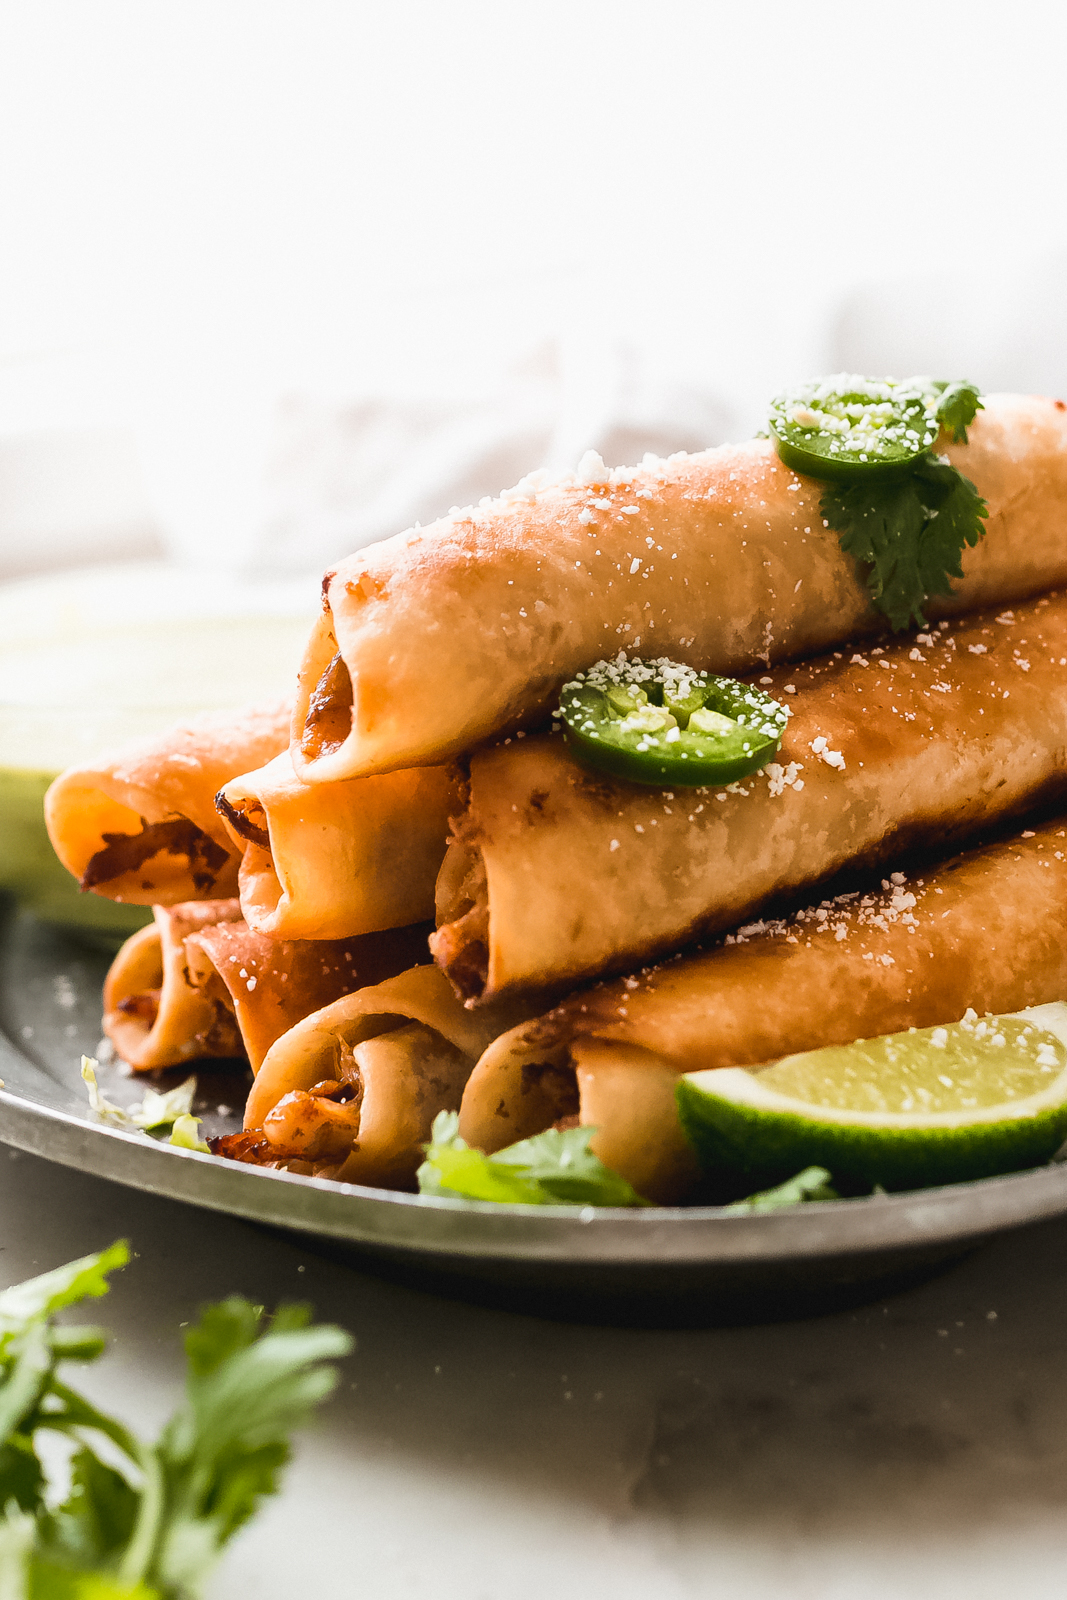 stack of fried taquitos topped with crumbled cheese and jalapeño slices